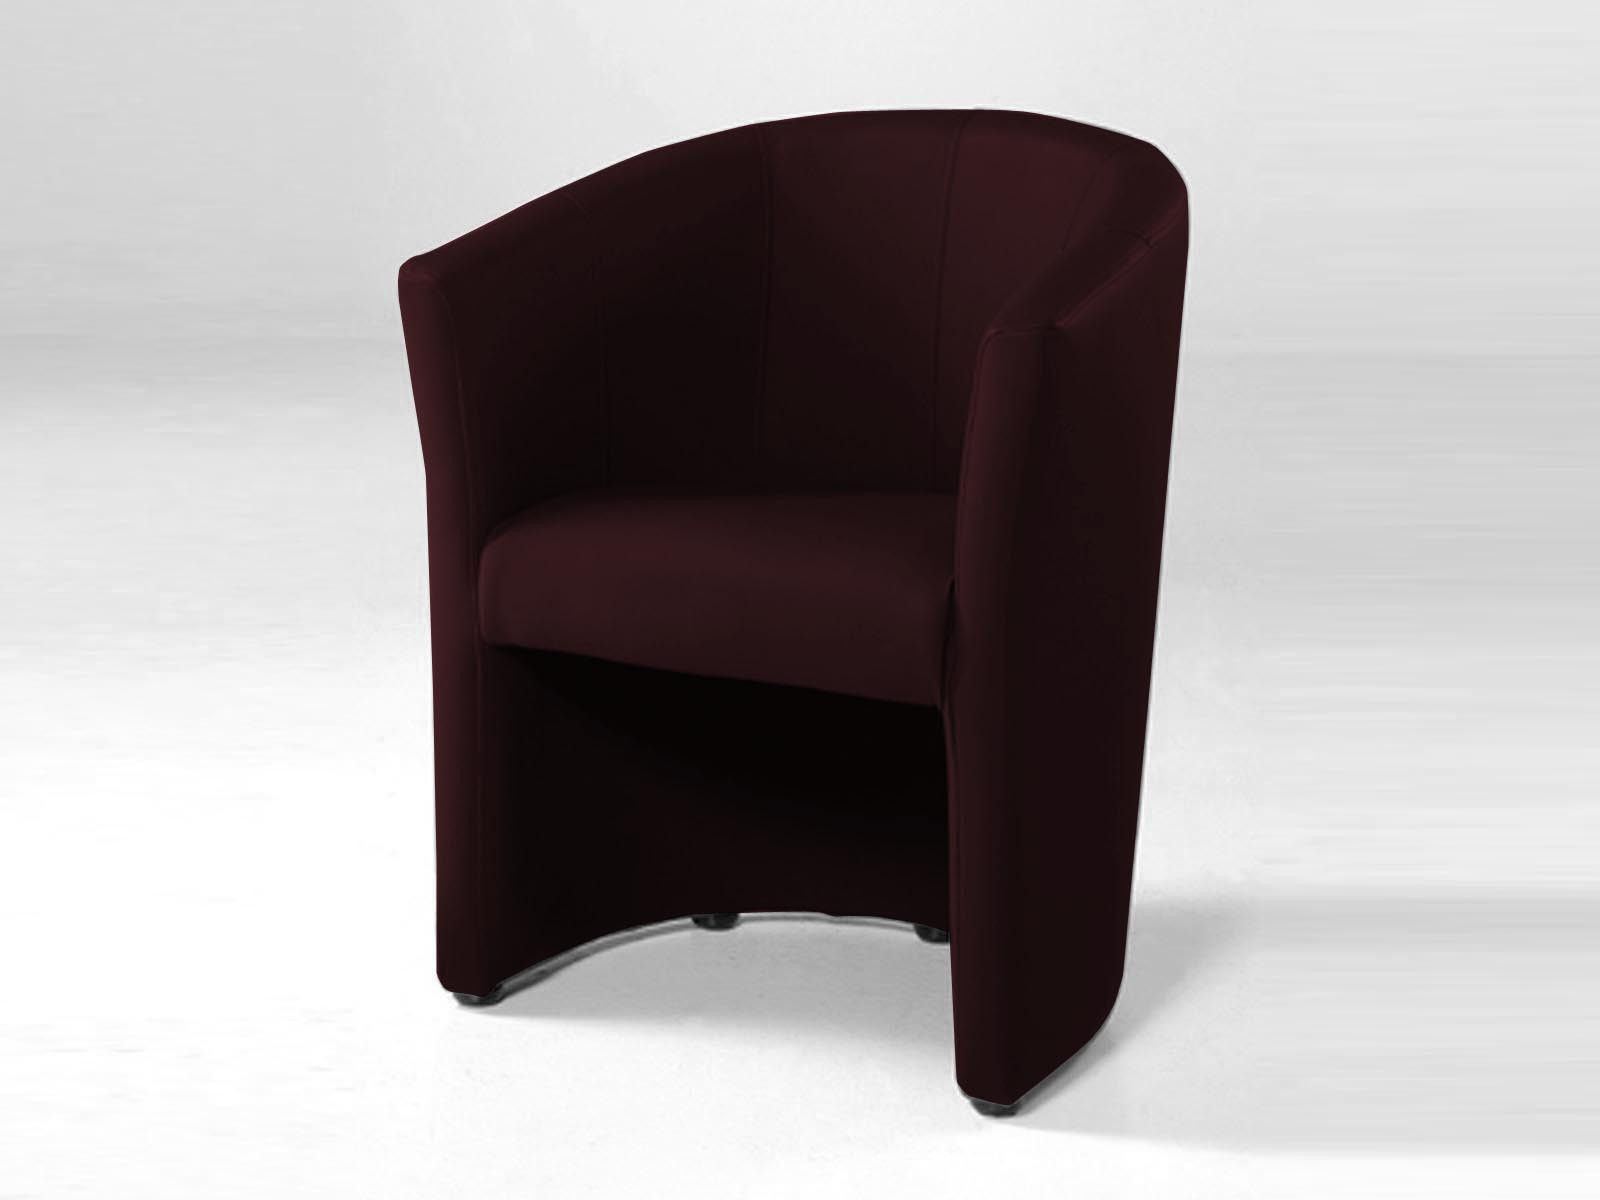 Petits Fauteuils Cabriolets Made In Europe Fauteuil Cabriolet En Pu Marron Zetting